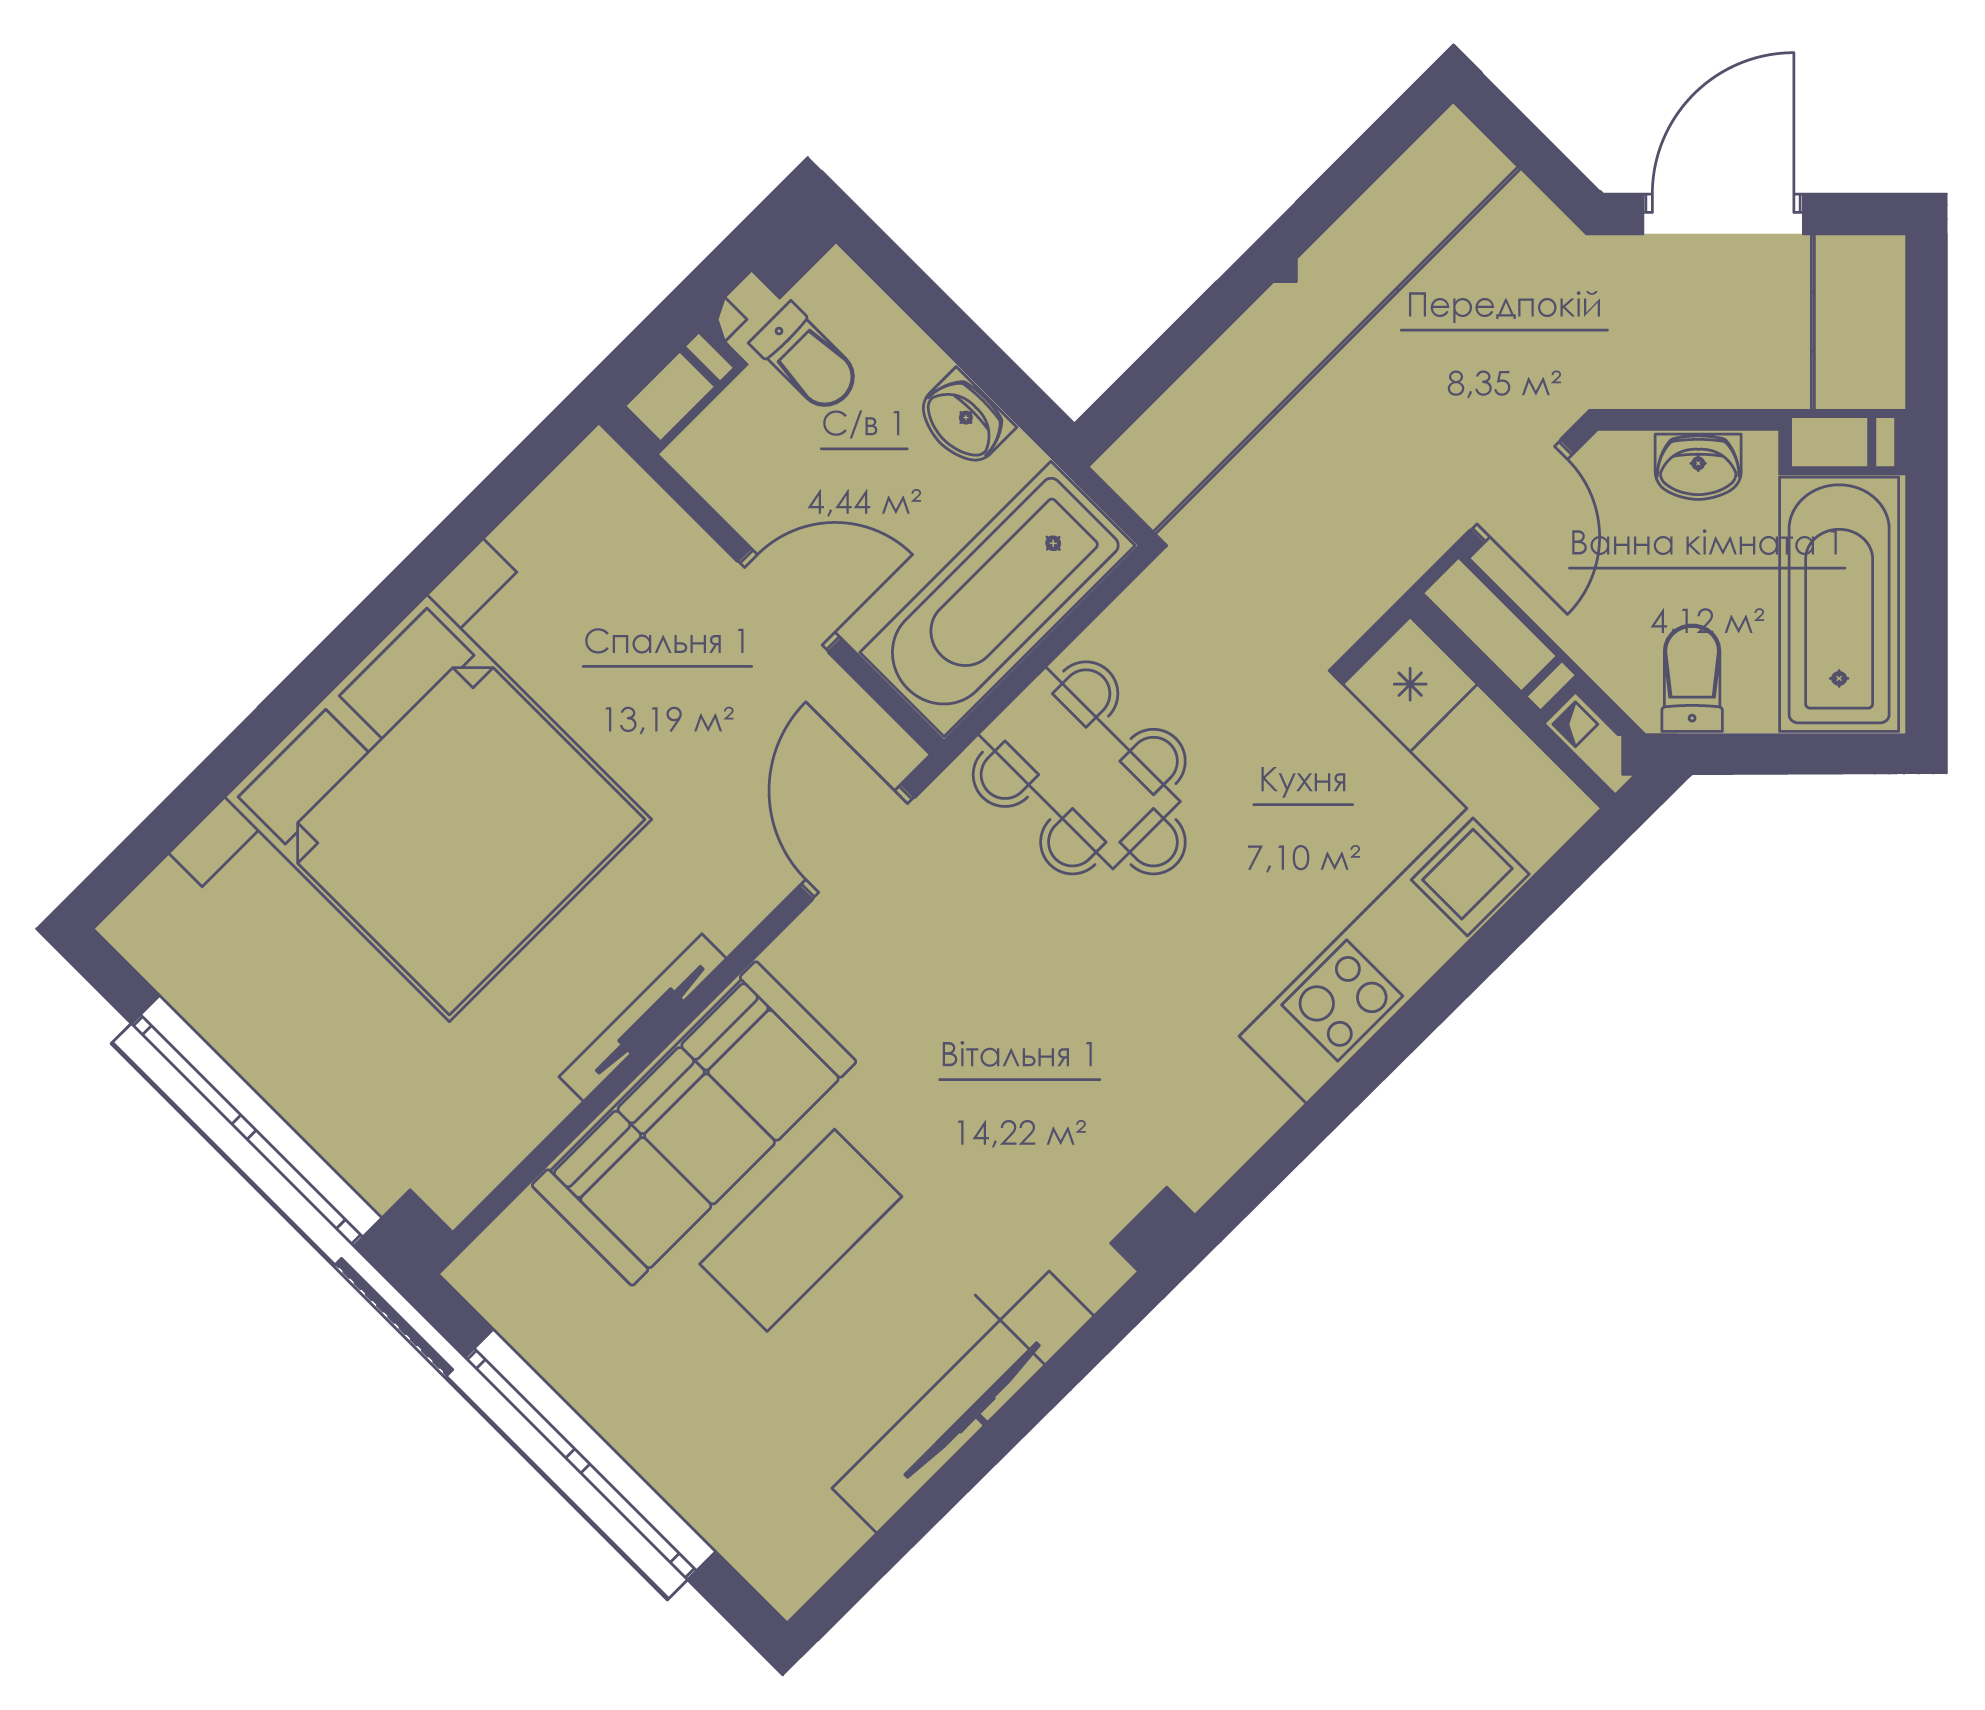 Apartment layout KV_71_2m_1_1_3-1